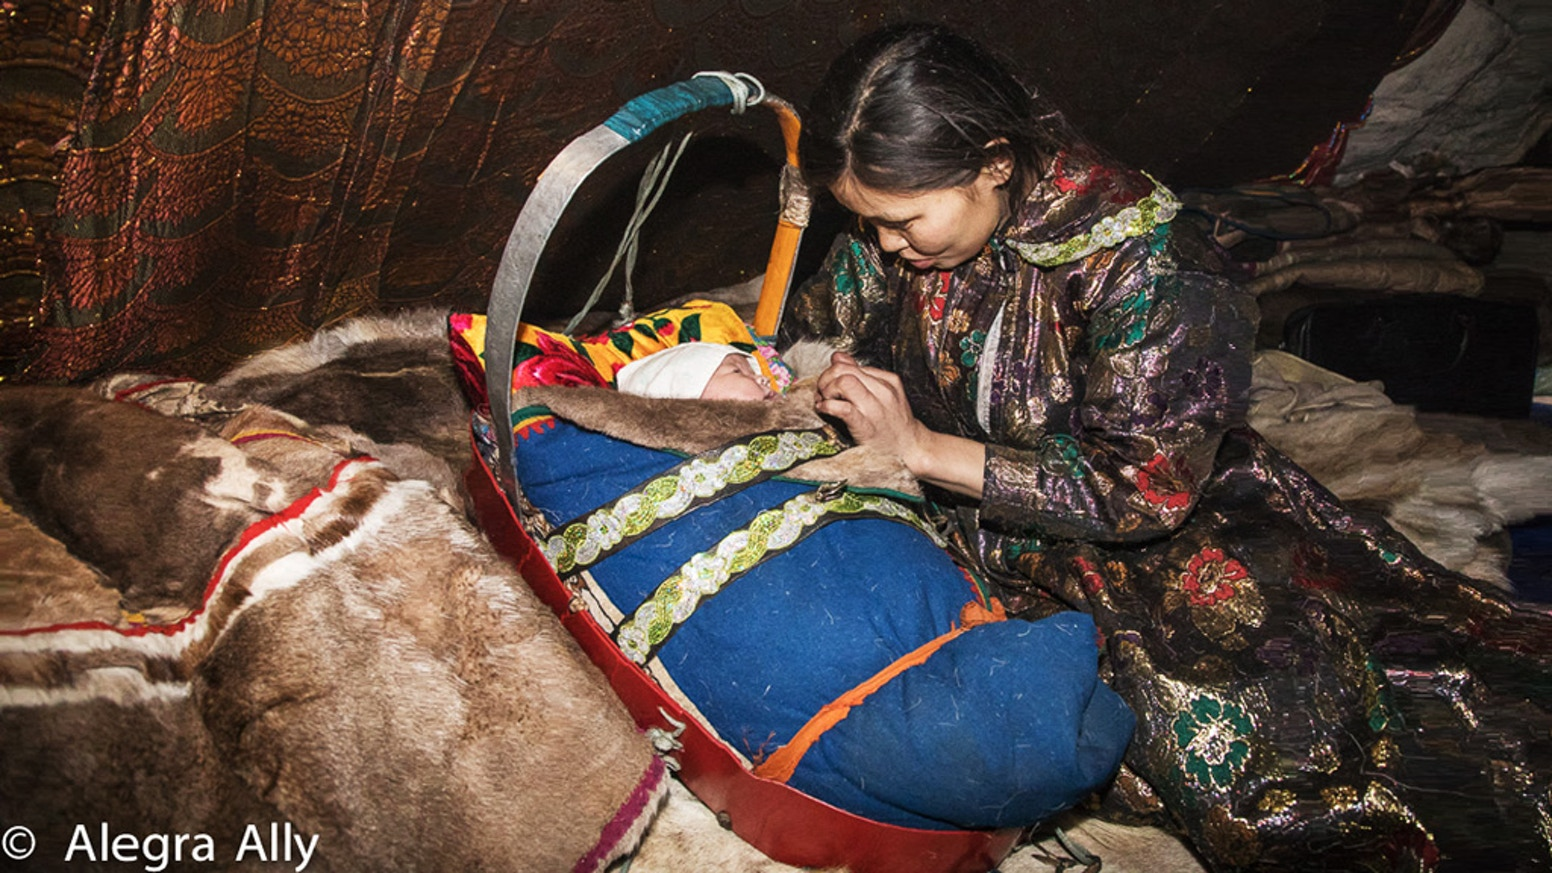 A rare visual photographic documentation of a vanishing way of life: pregnancy and childbirth amongst Nenets women in Siberia